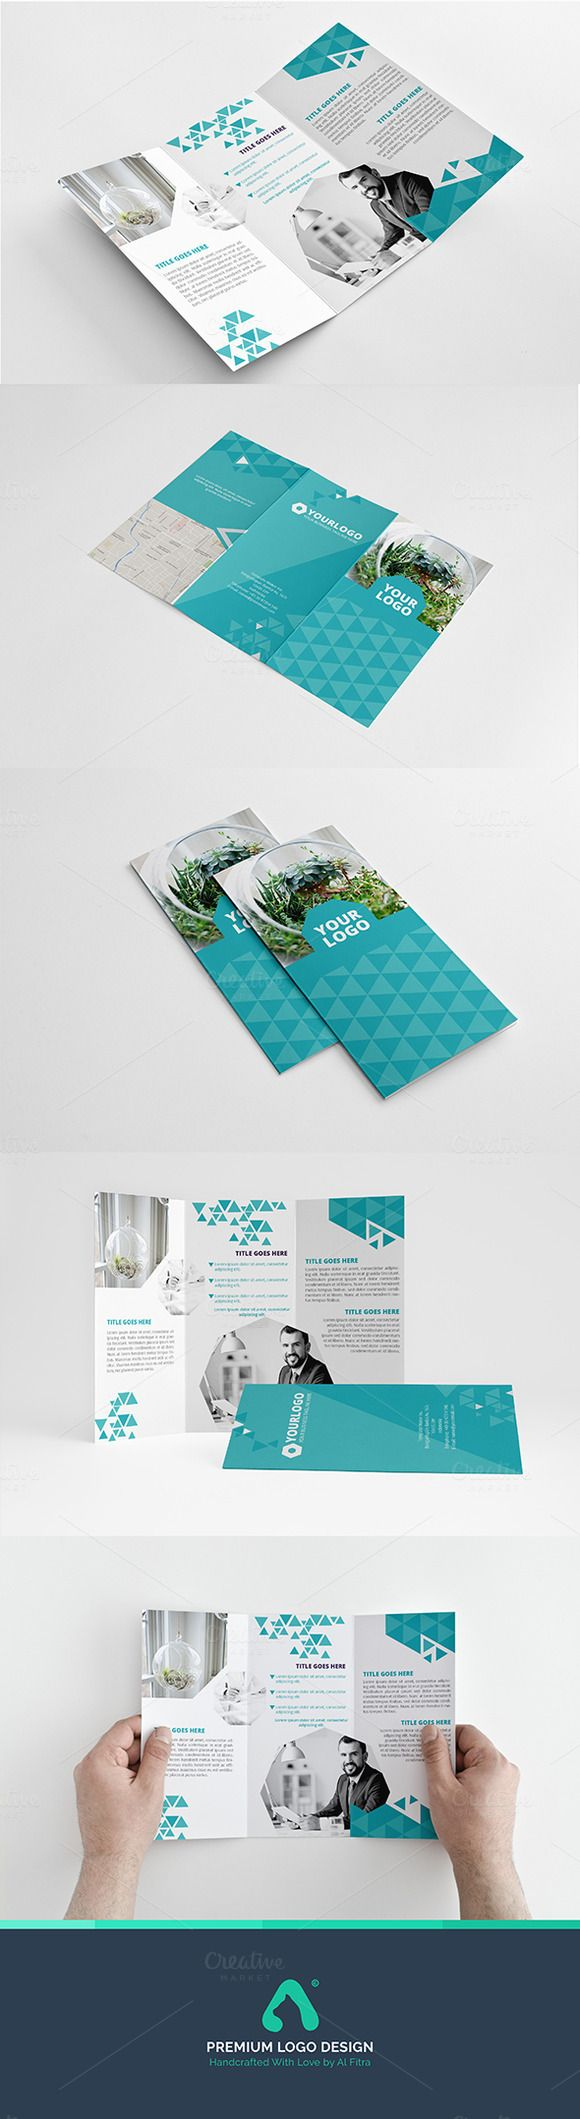 Toska Trifold Template by Al Fitra on Creative Market